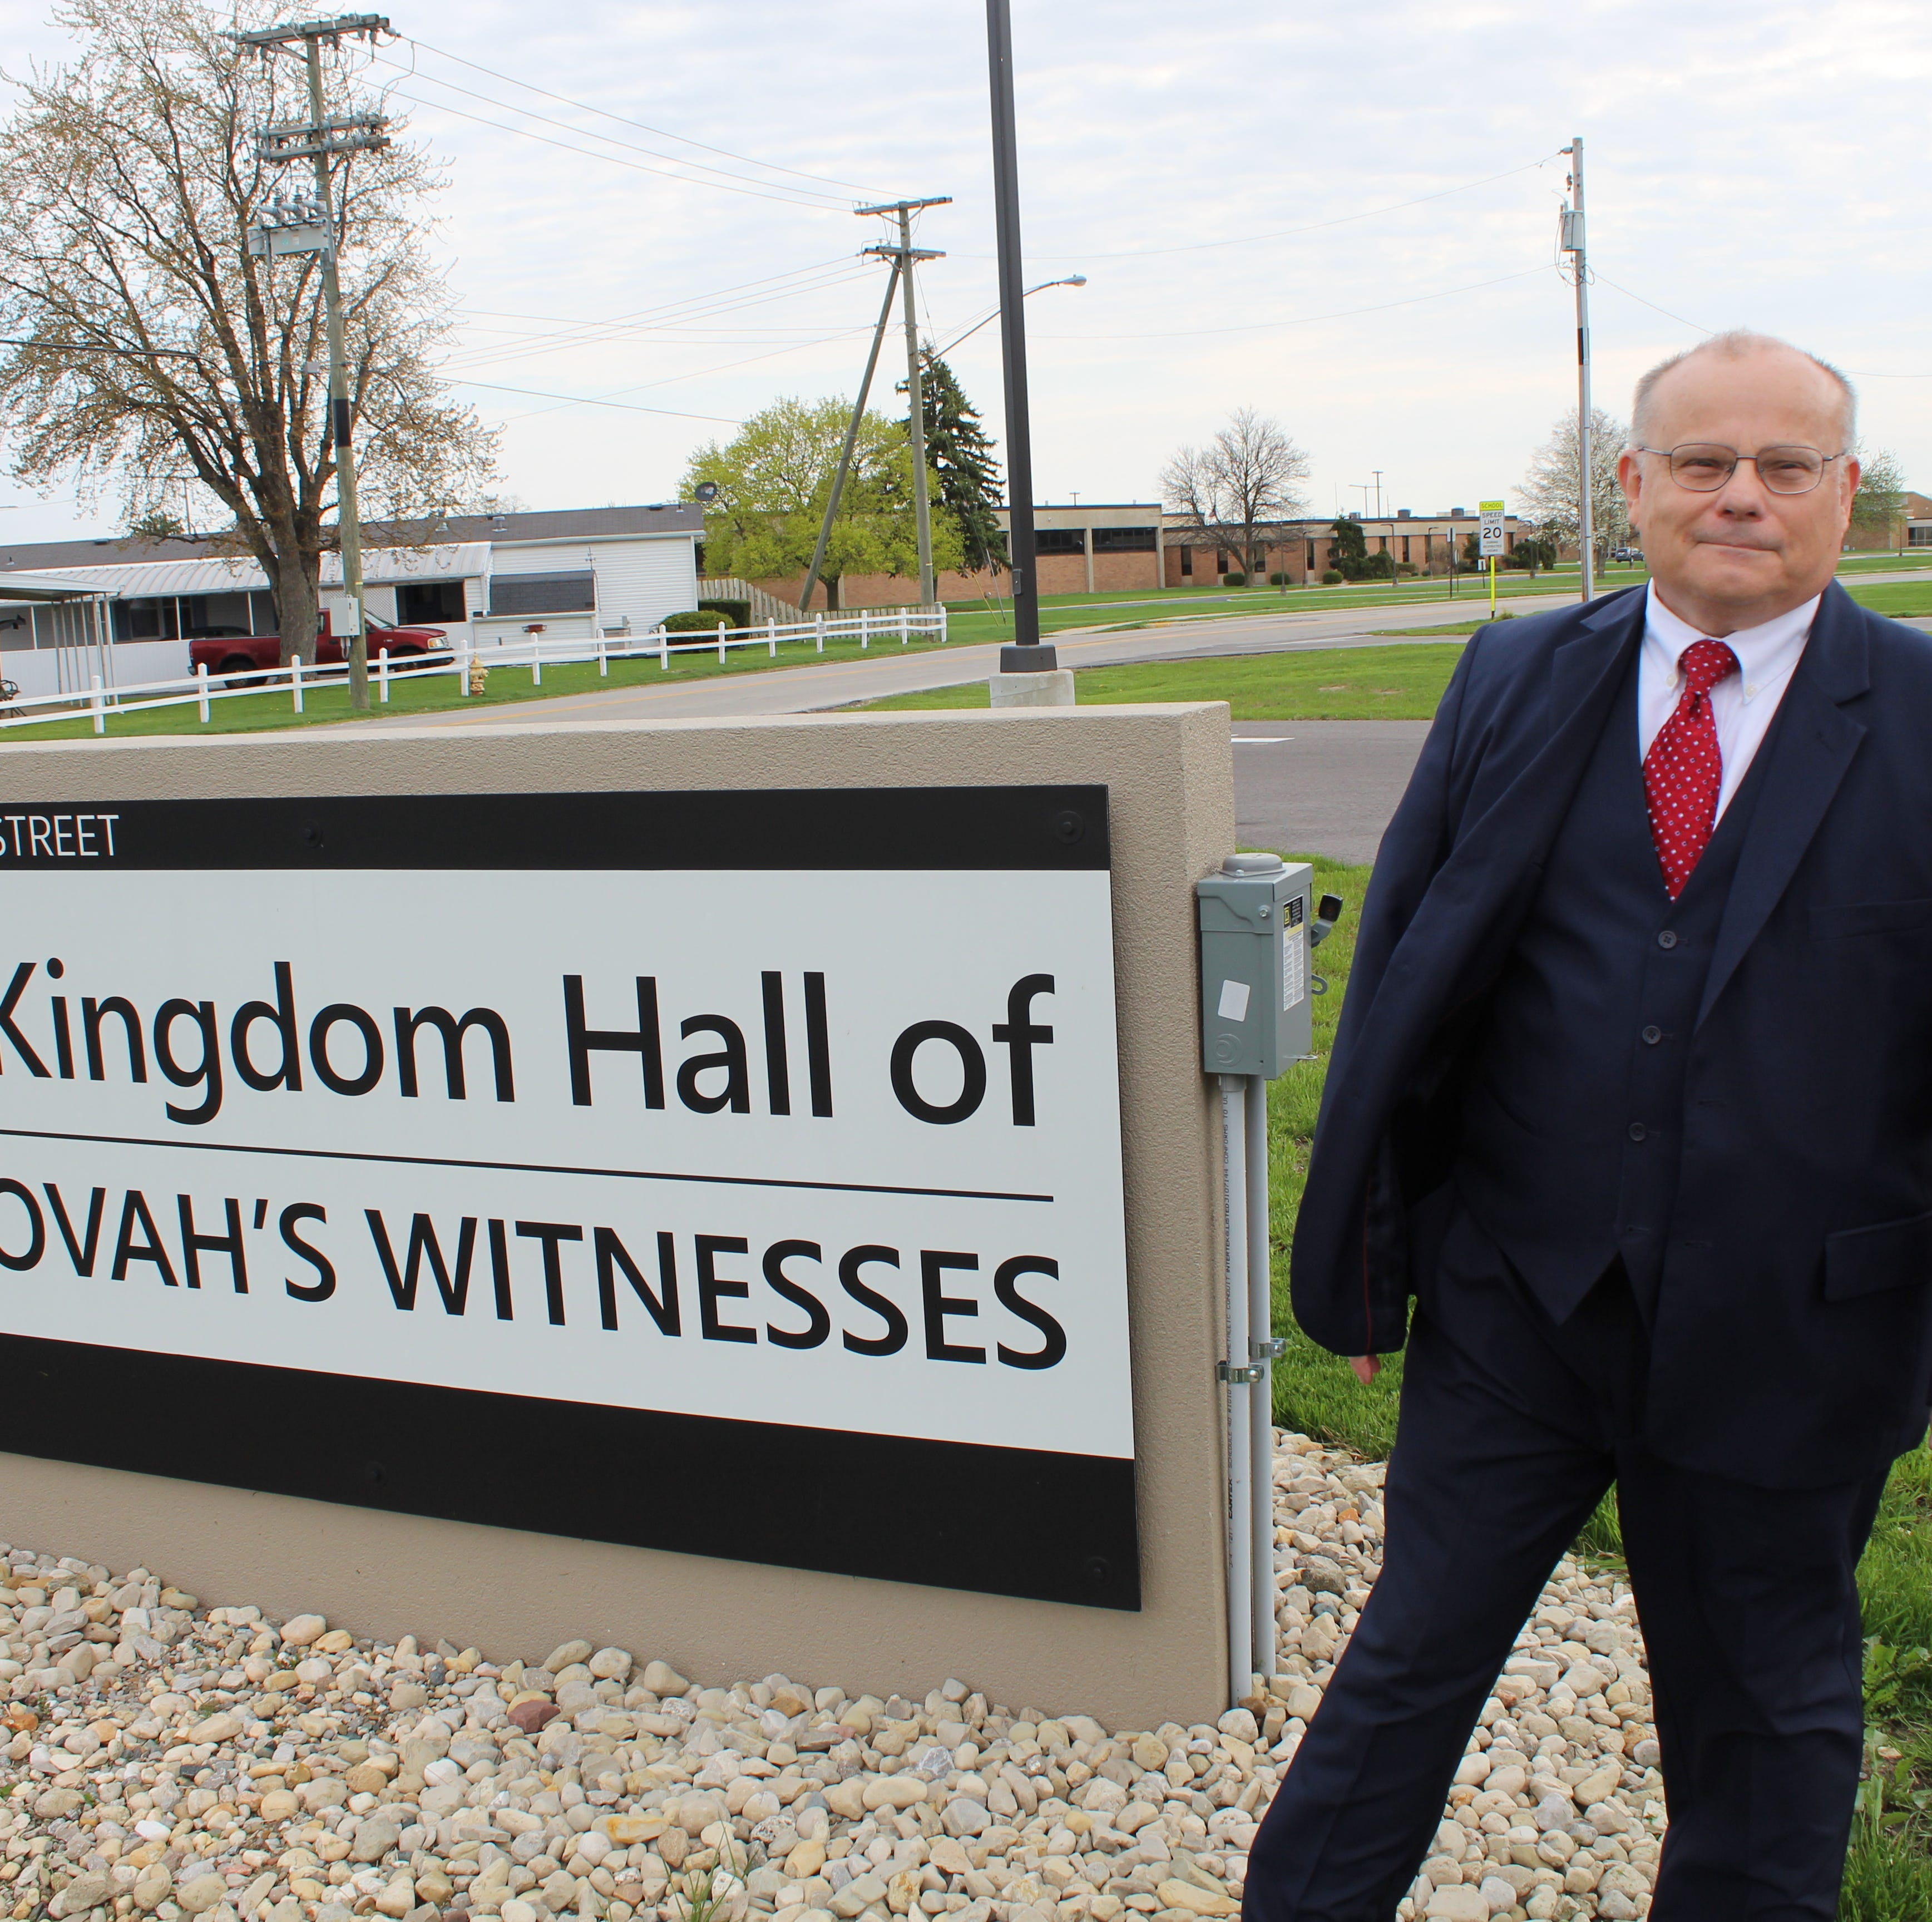 Public can witness the newly renovated Kingdom Hall